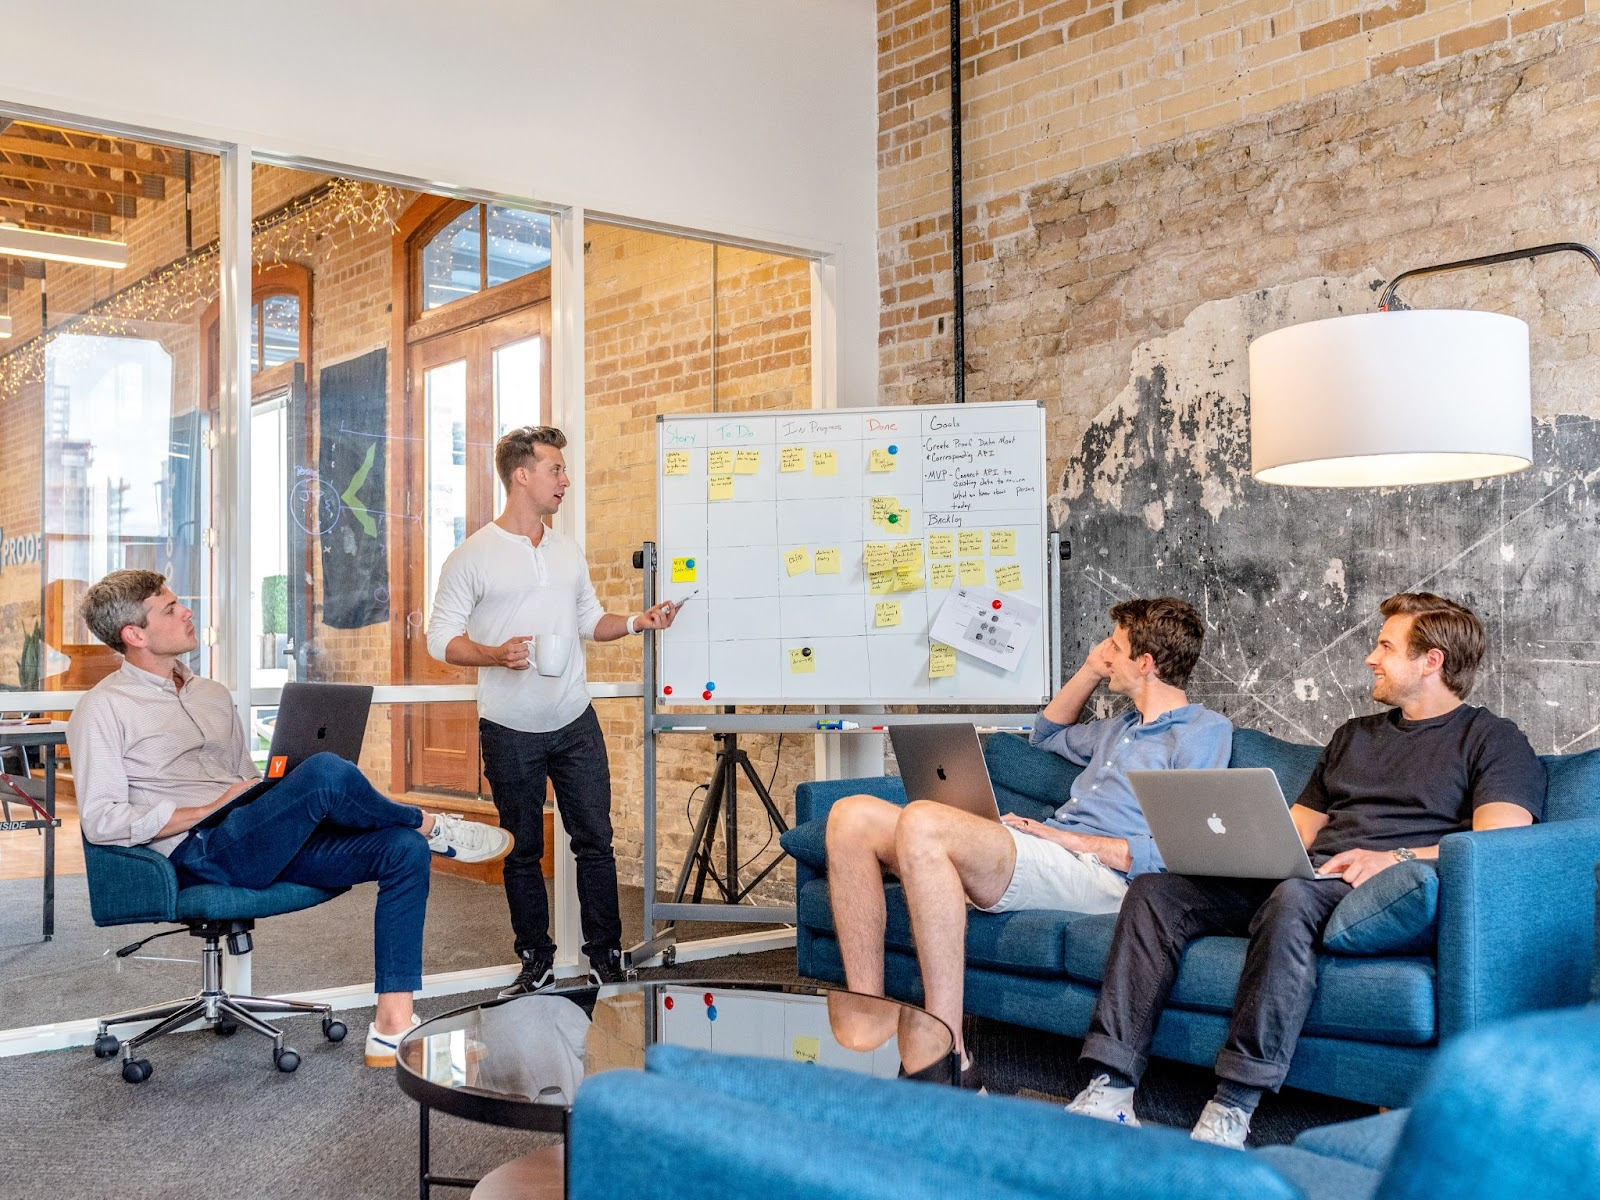 a meeting with four people discussing a whiteboard